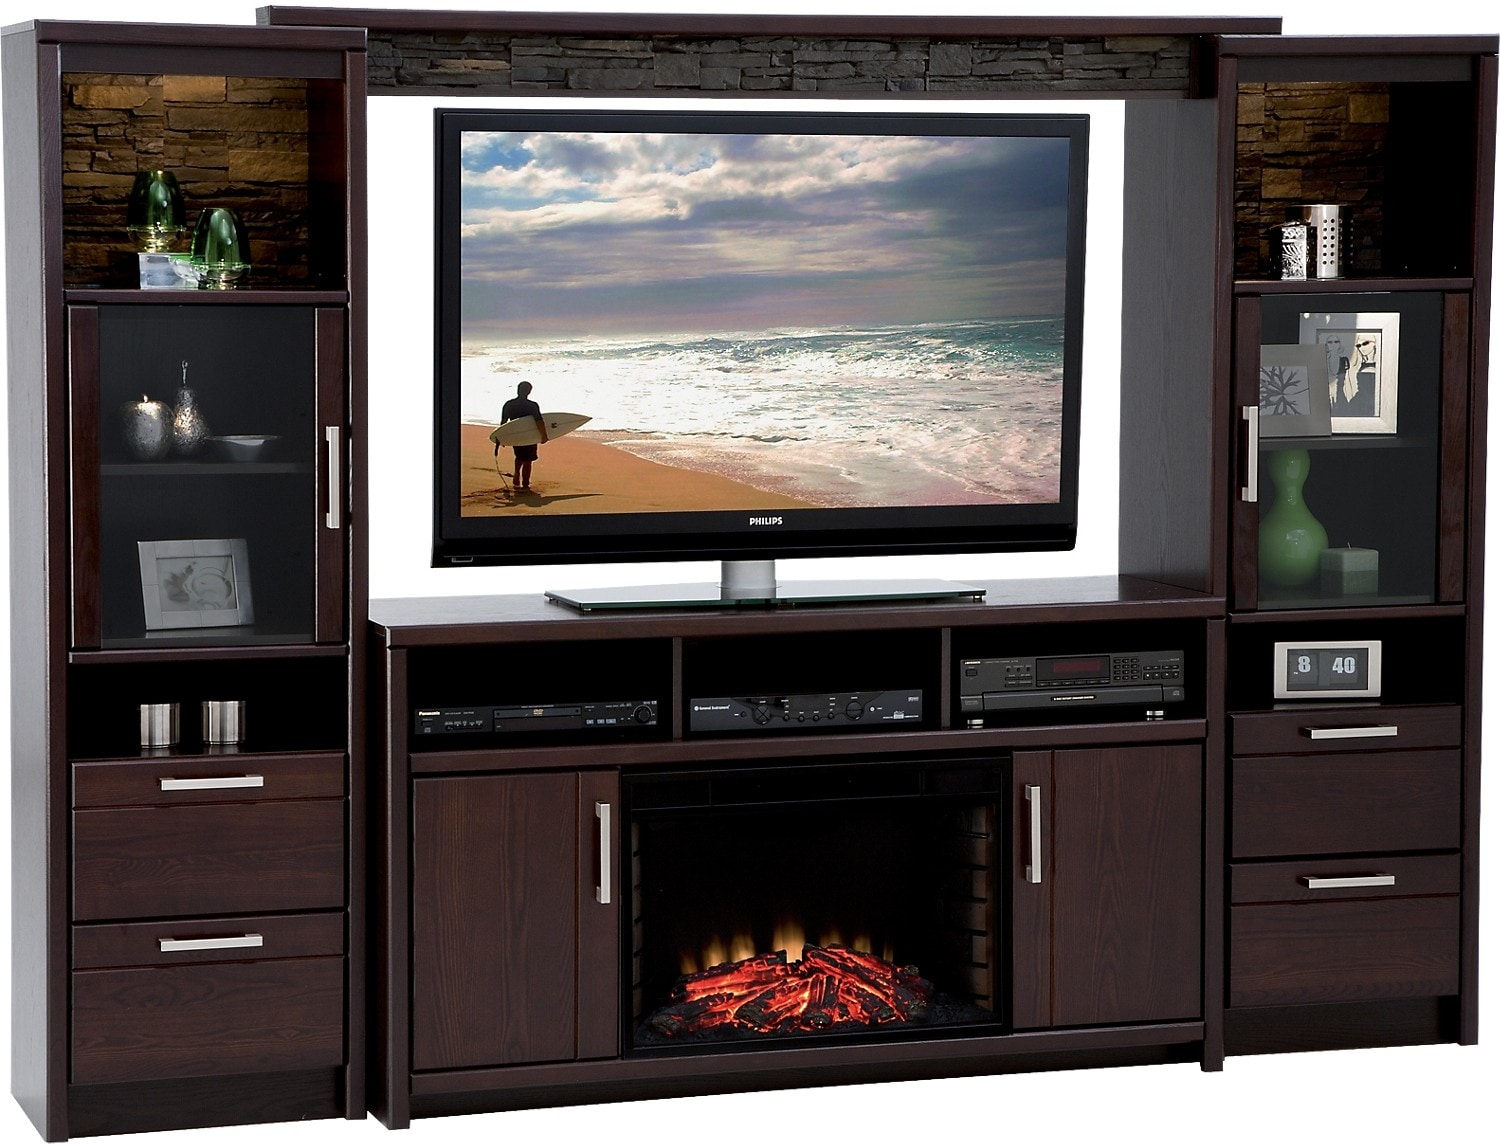 Meuble Tele Avec Foyer : Camden 5-piece Entertainment Centre And Log Firebox With 60 Tv